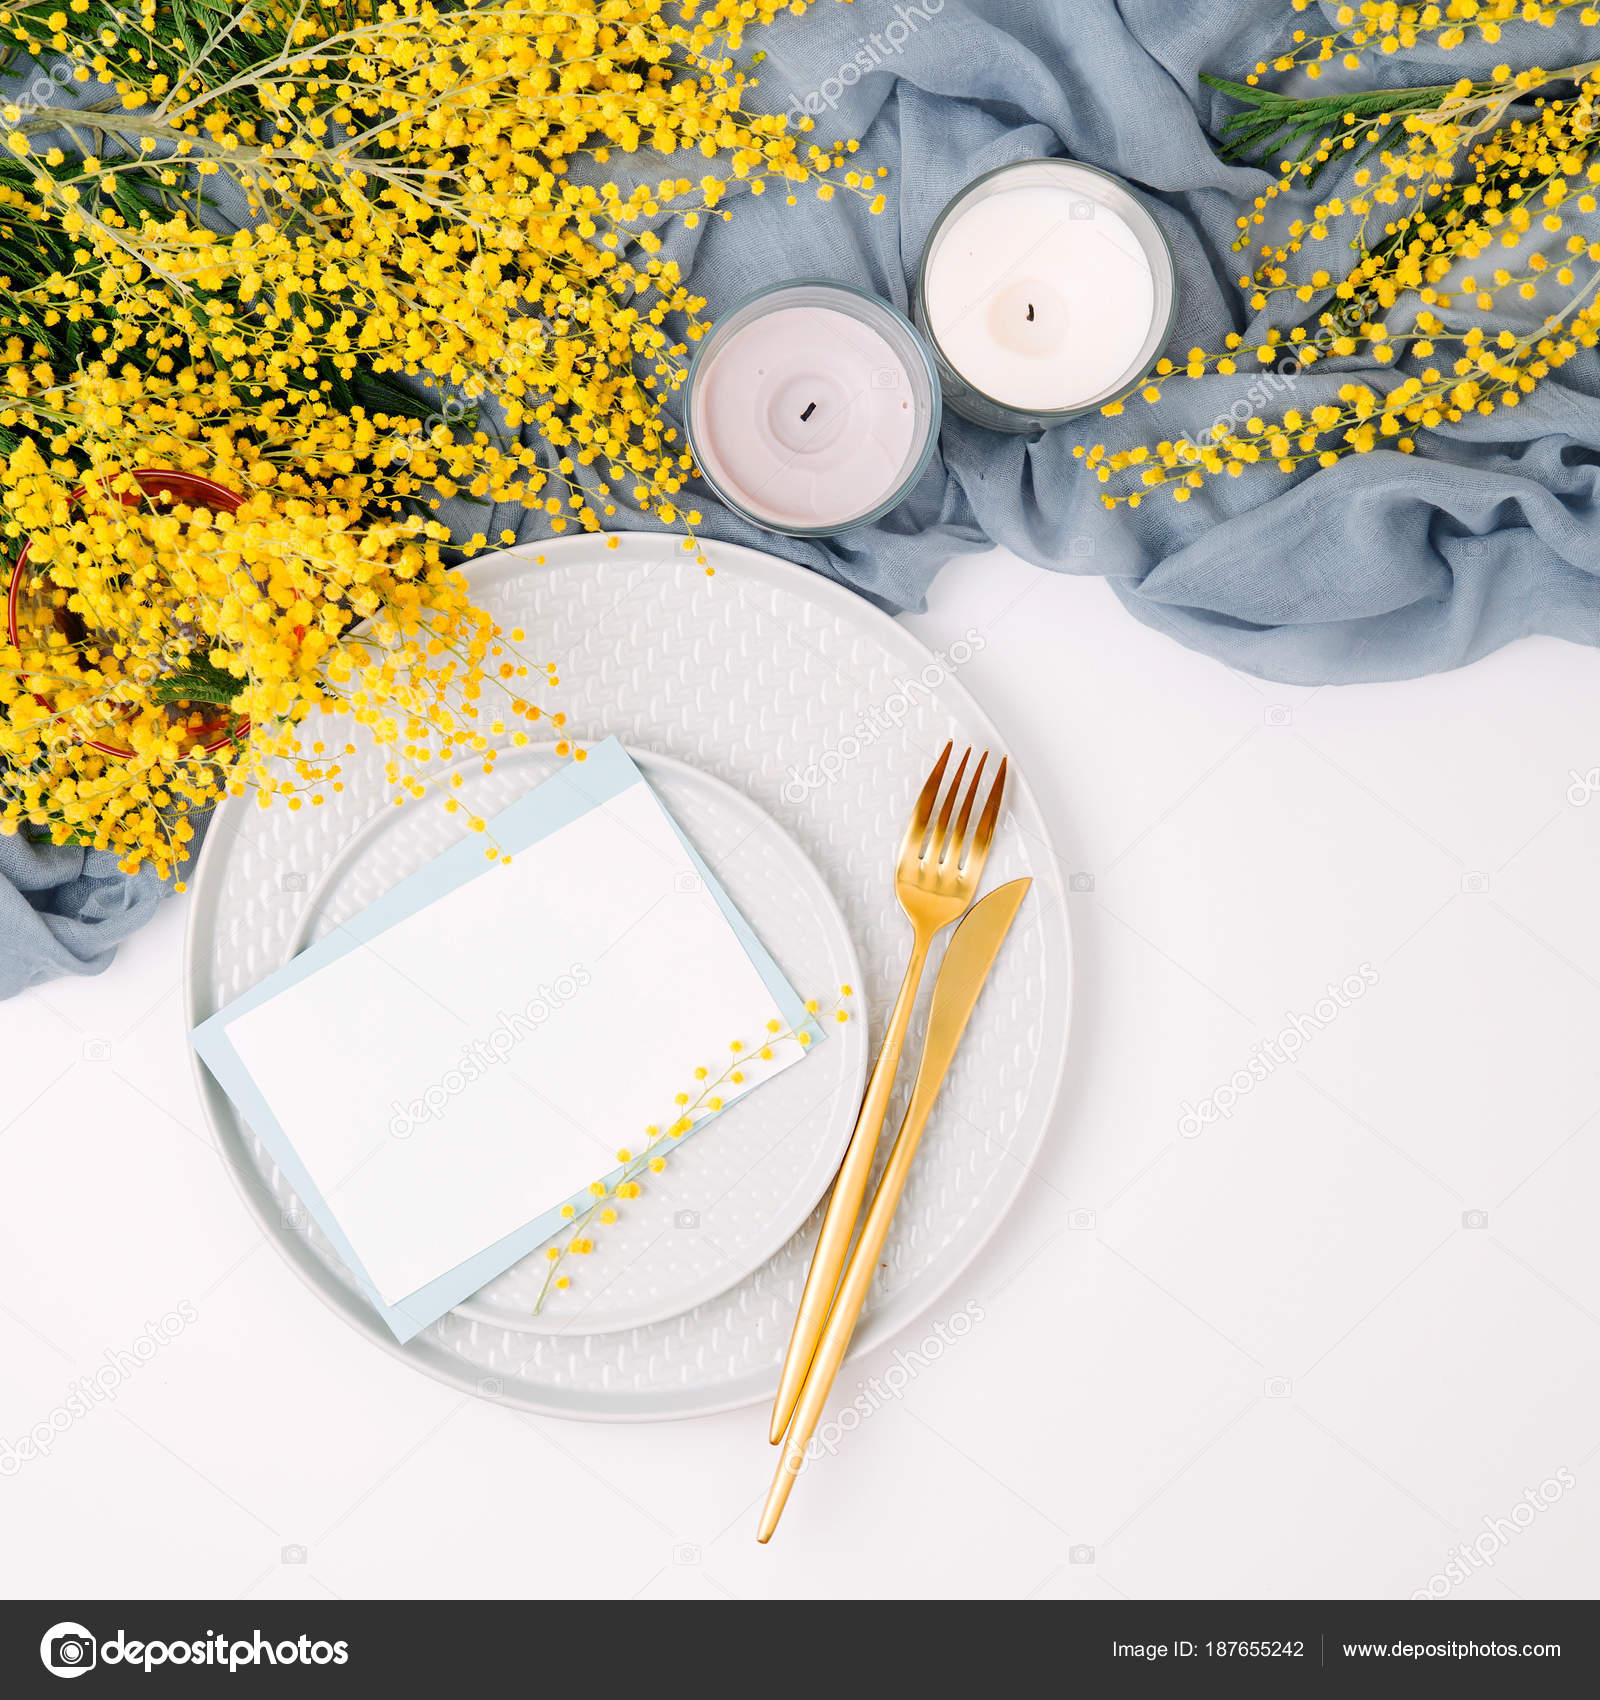 Festive Table Setting Plates Cutlery Gray Decorative Textile Yellow